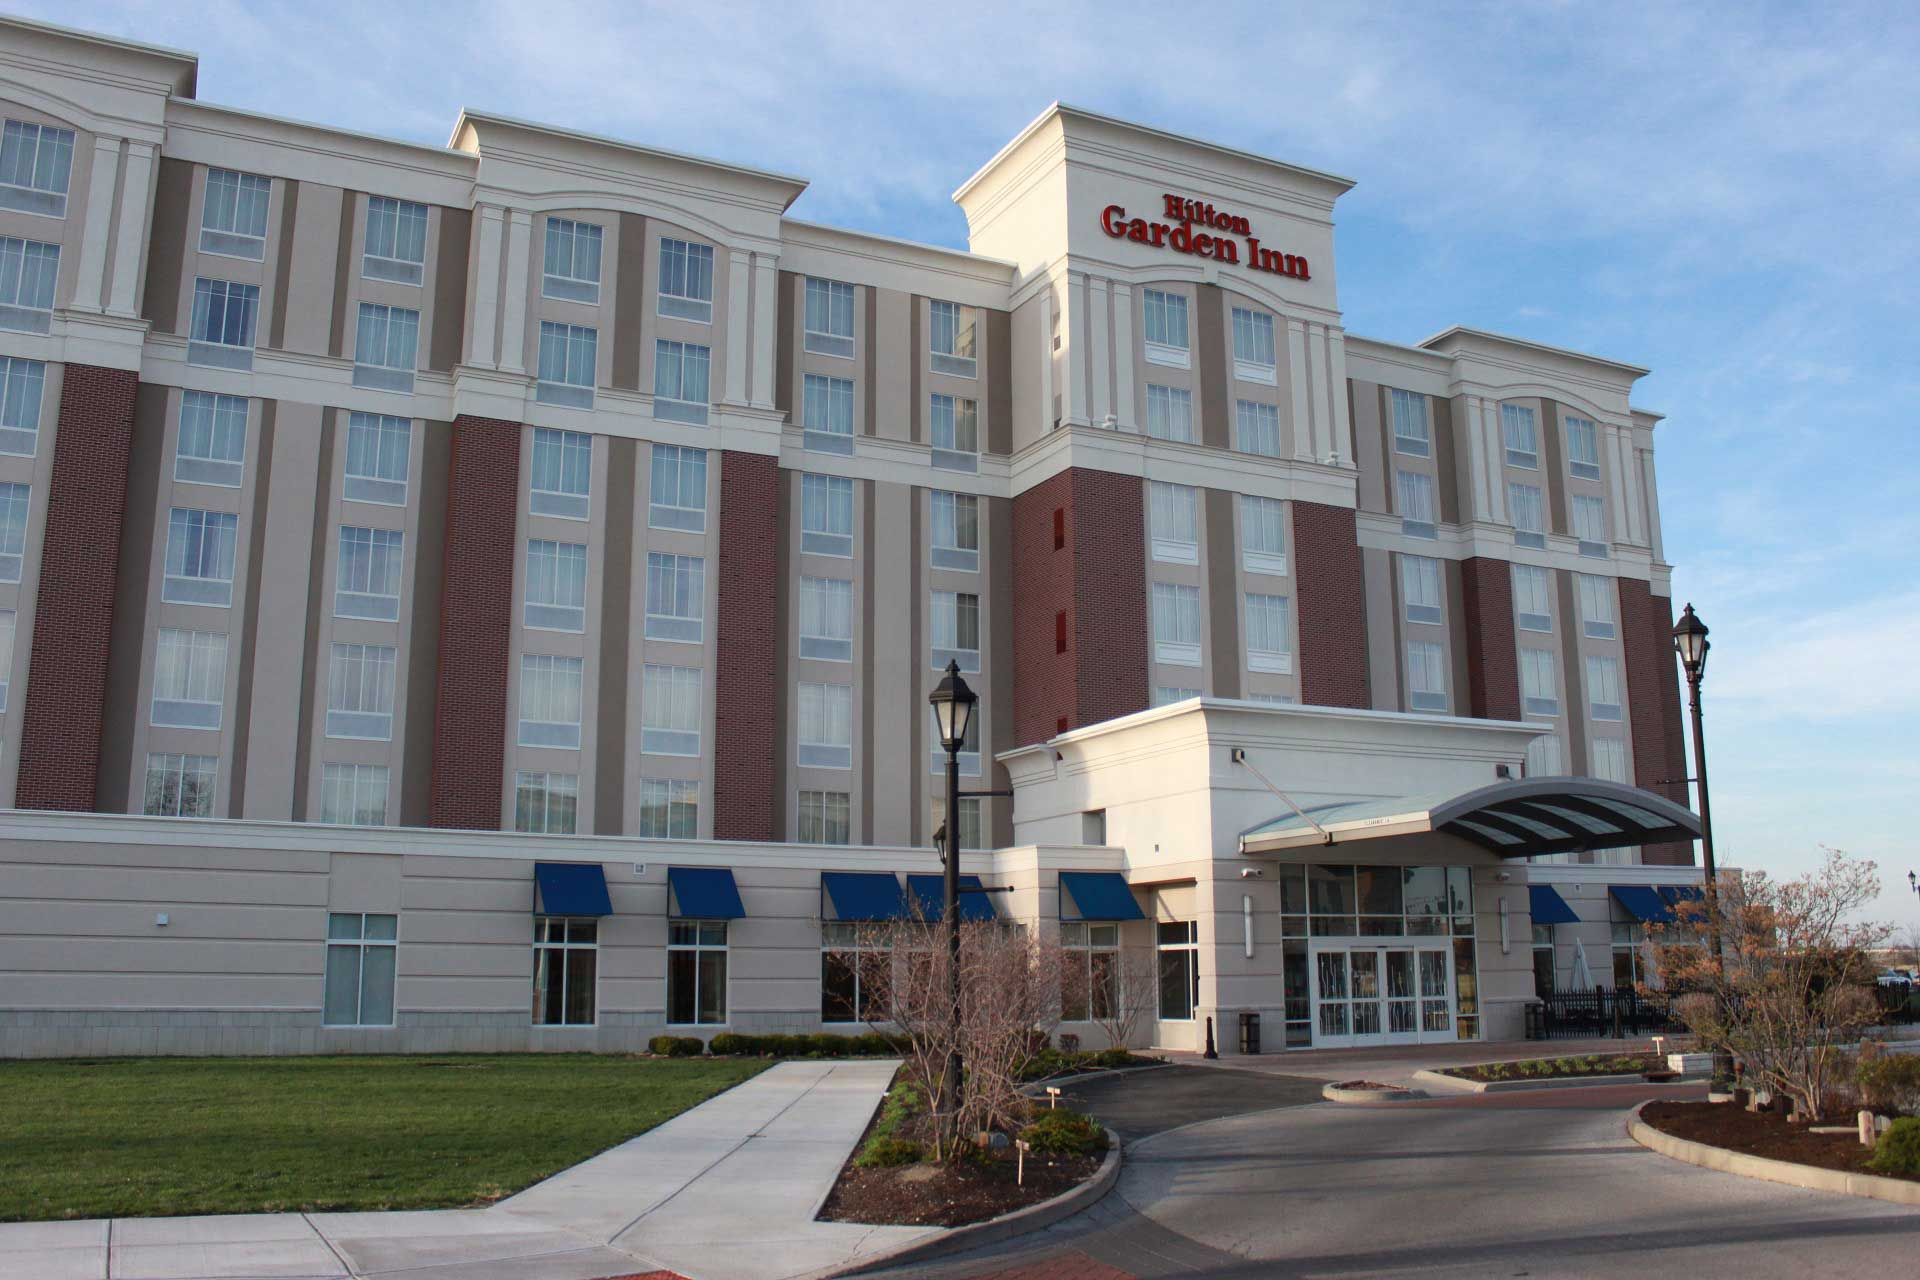 HILTON GARDEN INN AT LEVIS COMMONS